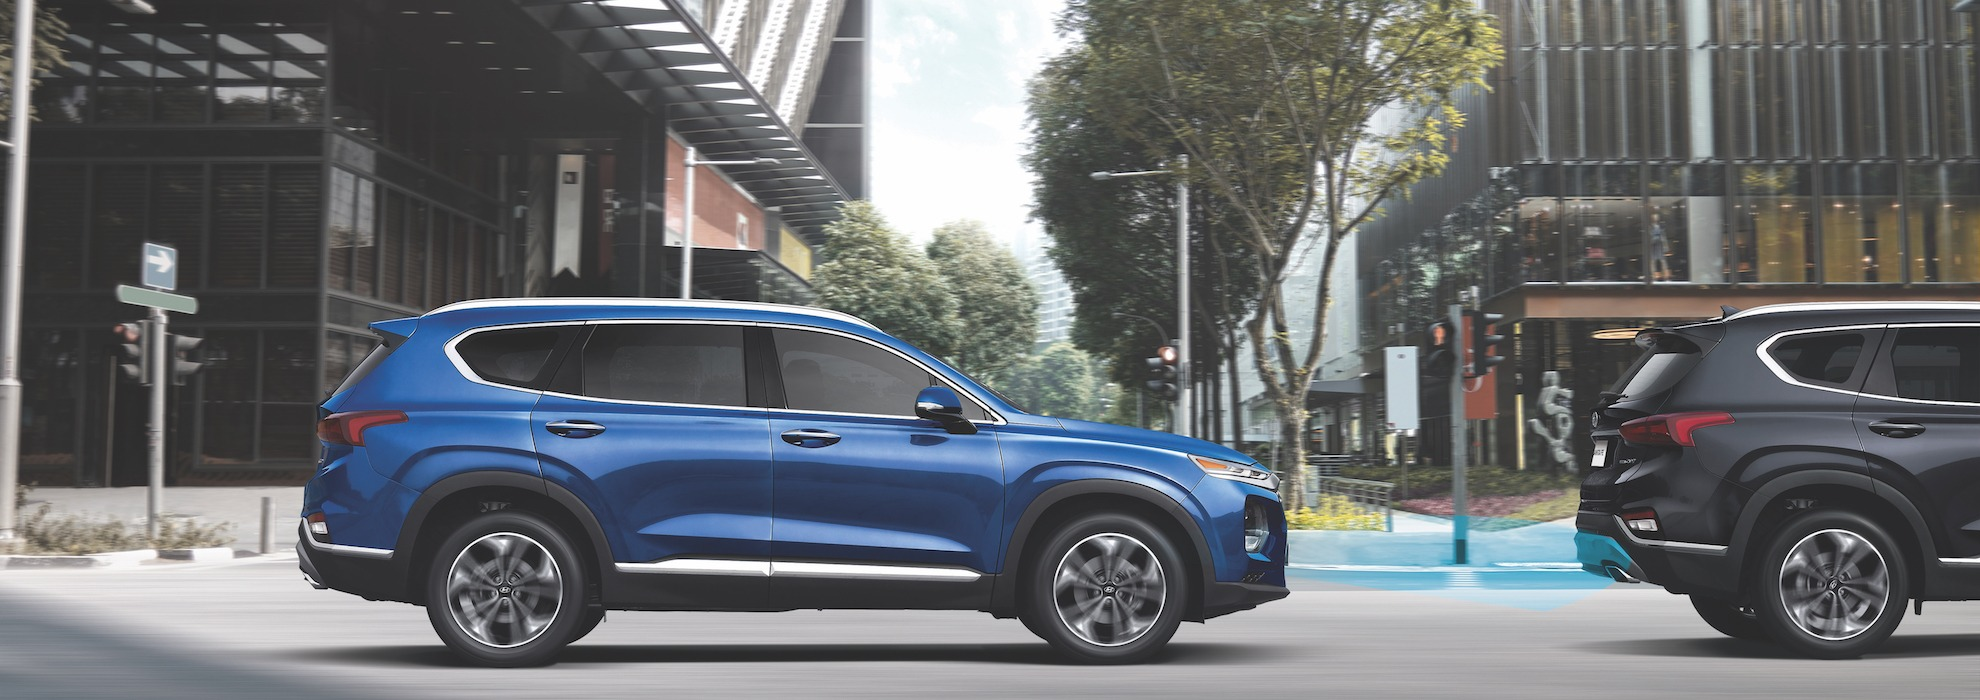 2019_SantaFe_Feature_Forward_Collision_4C_M